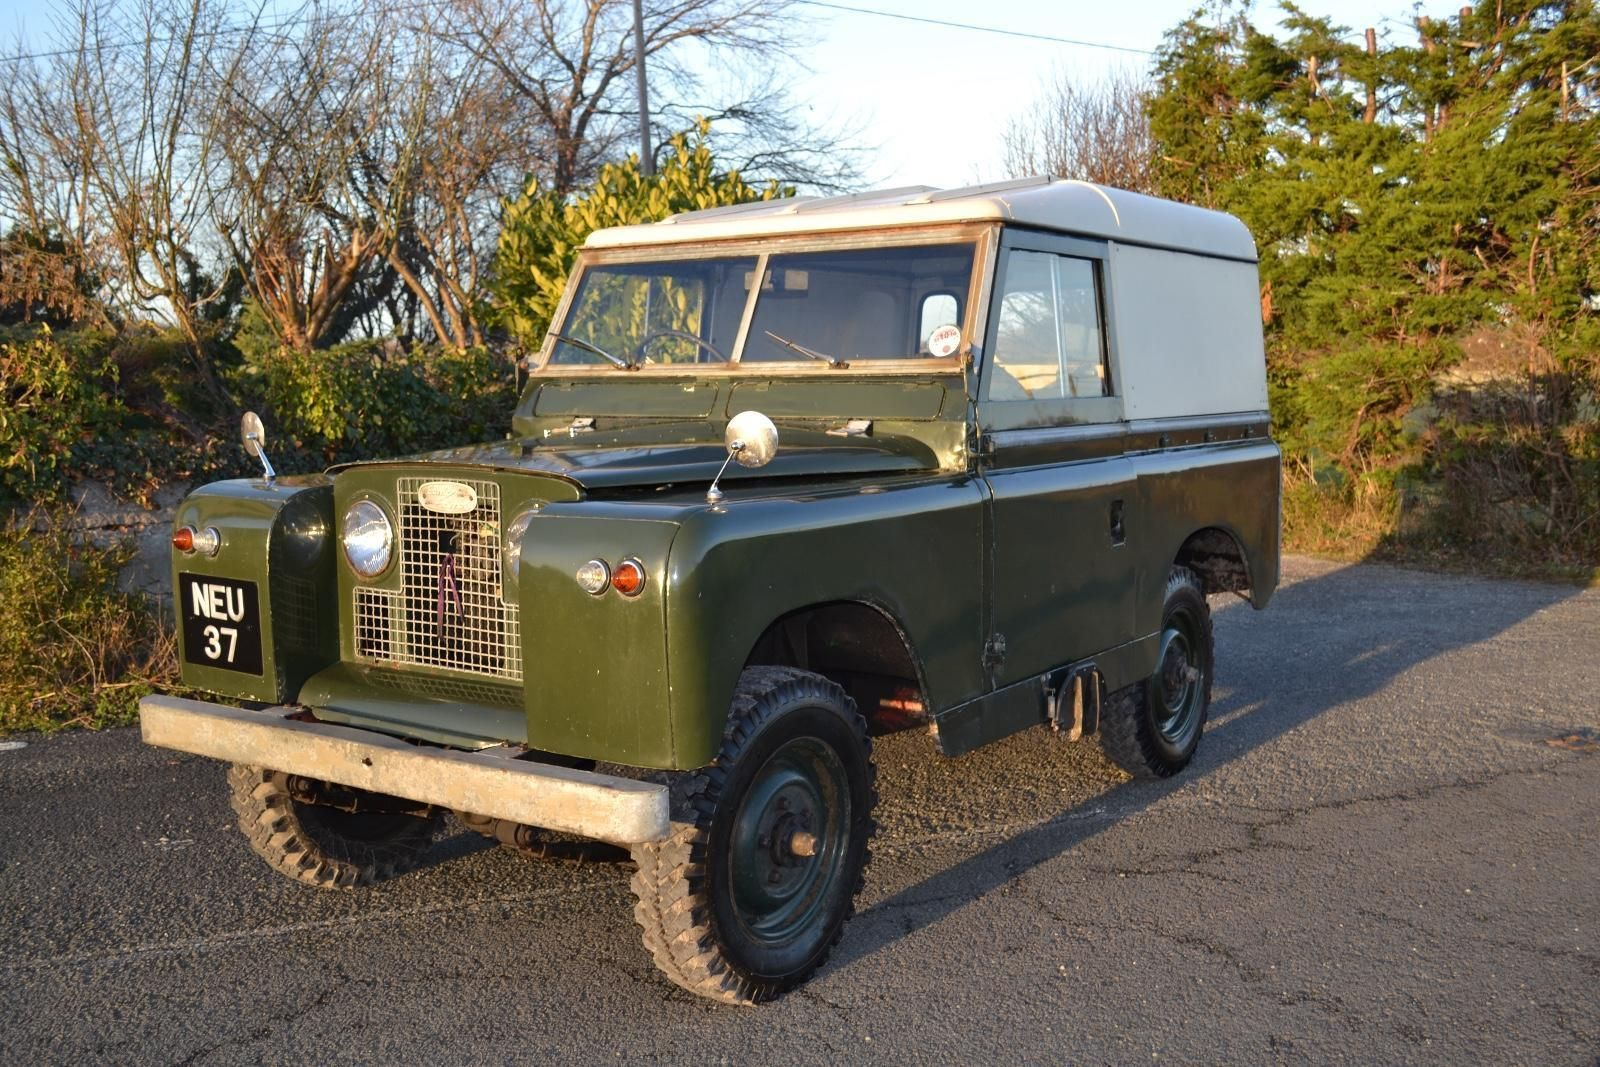 "Land Rover Series 2a 88"" 1963 1 Owner from New & 73,000 Miles. NEU 37 – 1963  Land Rover Series 2a Hardtop that has covered just 73,000 miles from new."